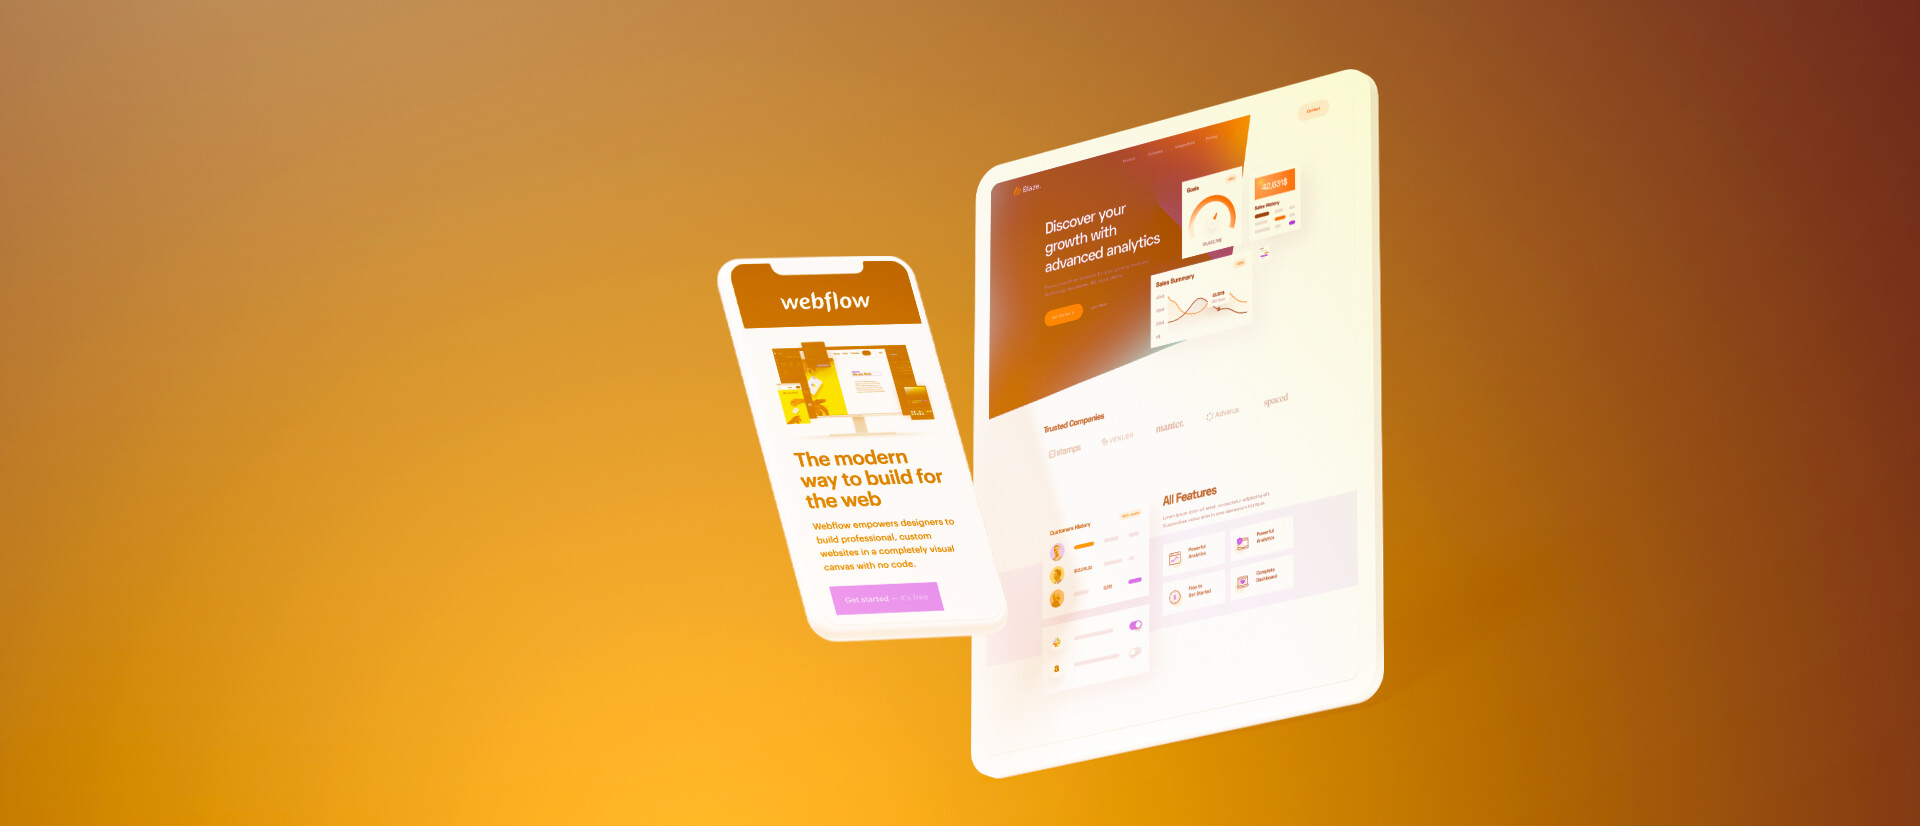 White floating smartphone and tablet on a orange background.